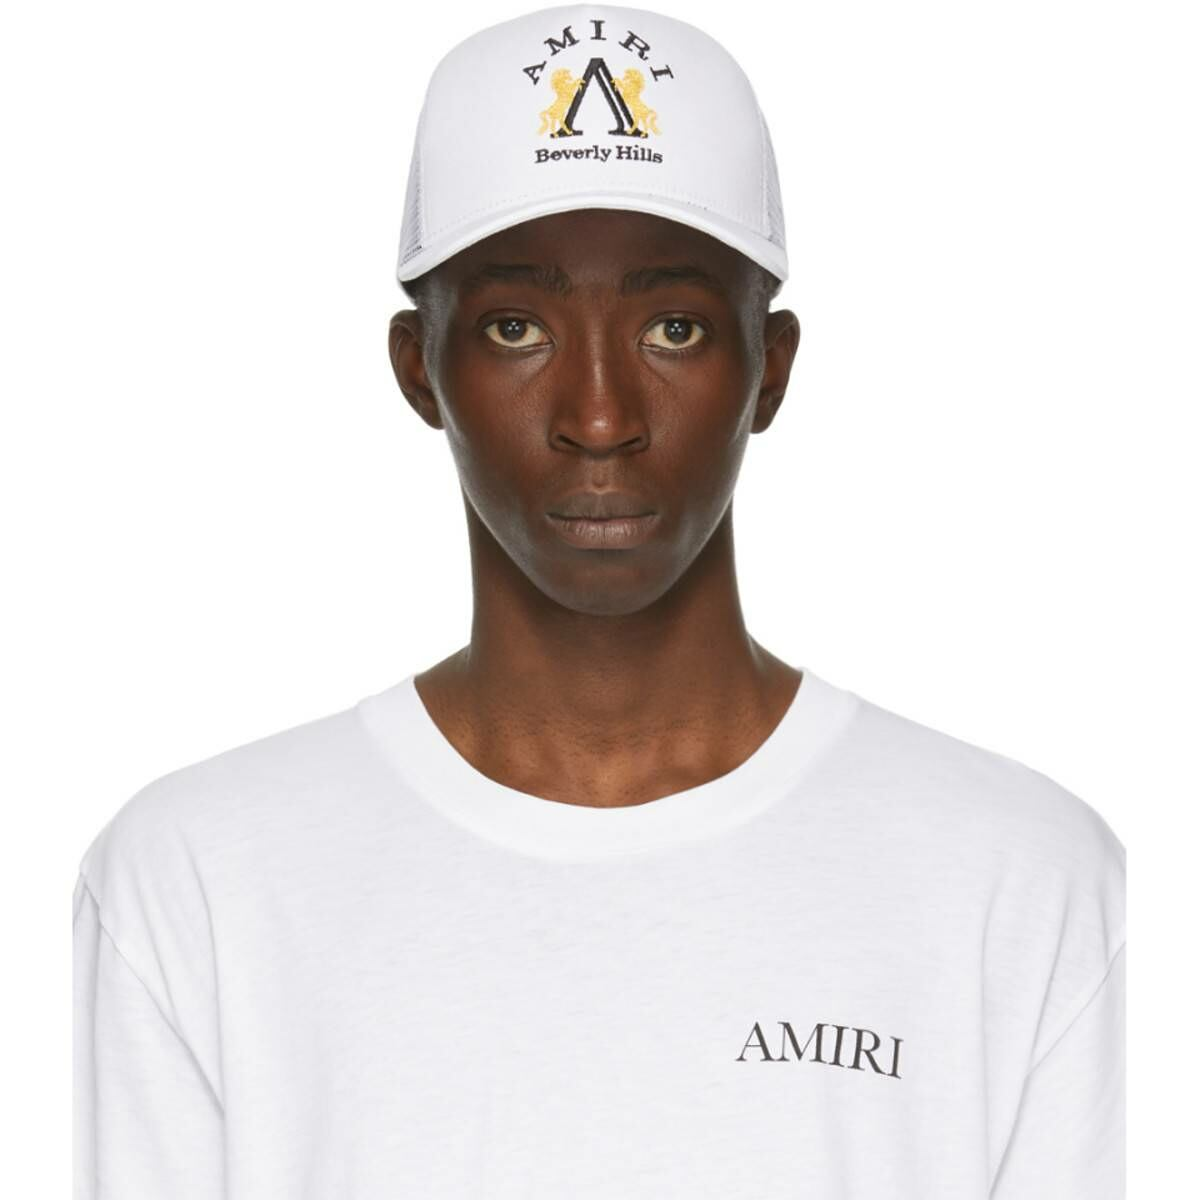 Amiri White Beverly Hills Cap Ssense USA MEN Men ACCESSORIES Mens CAPS